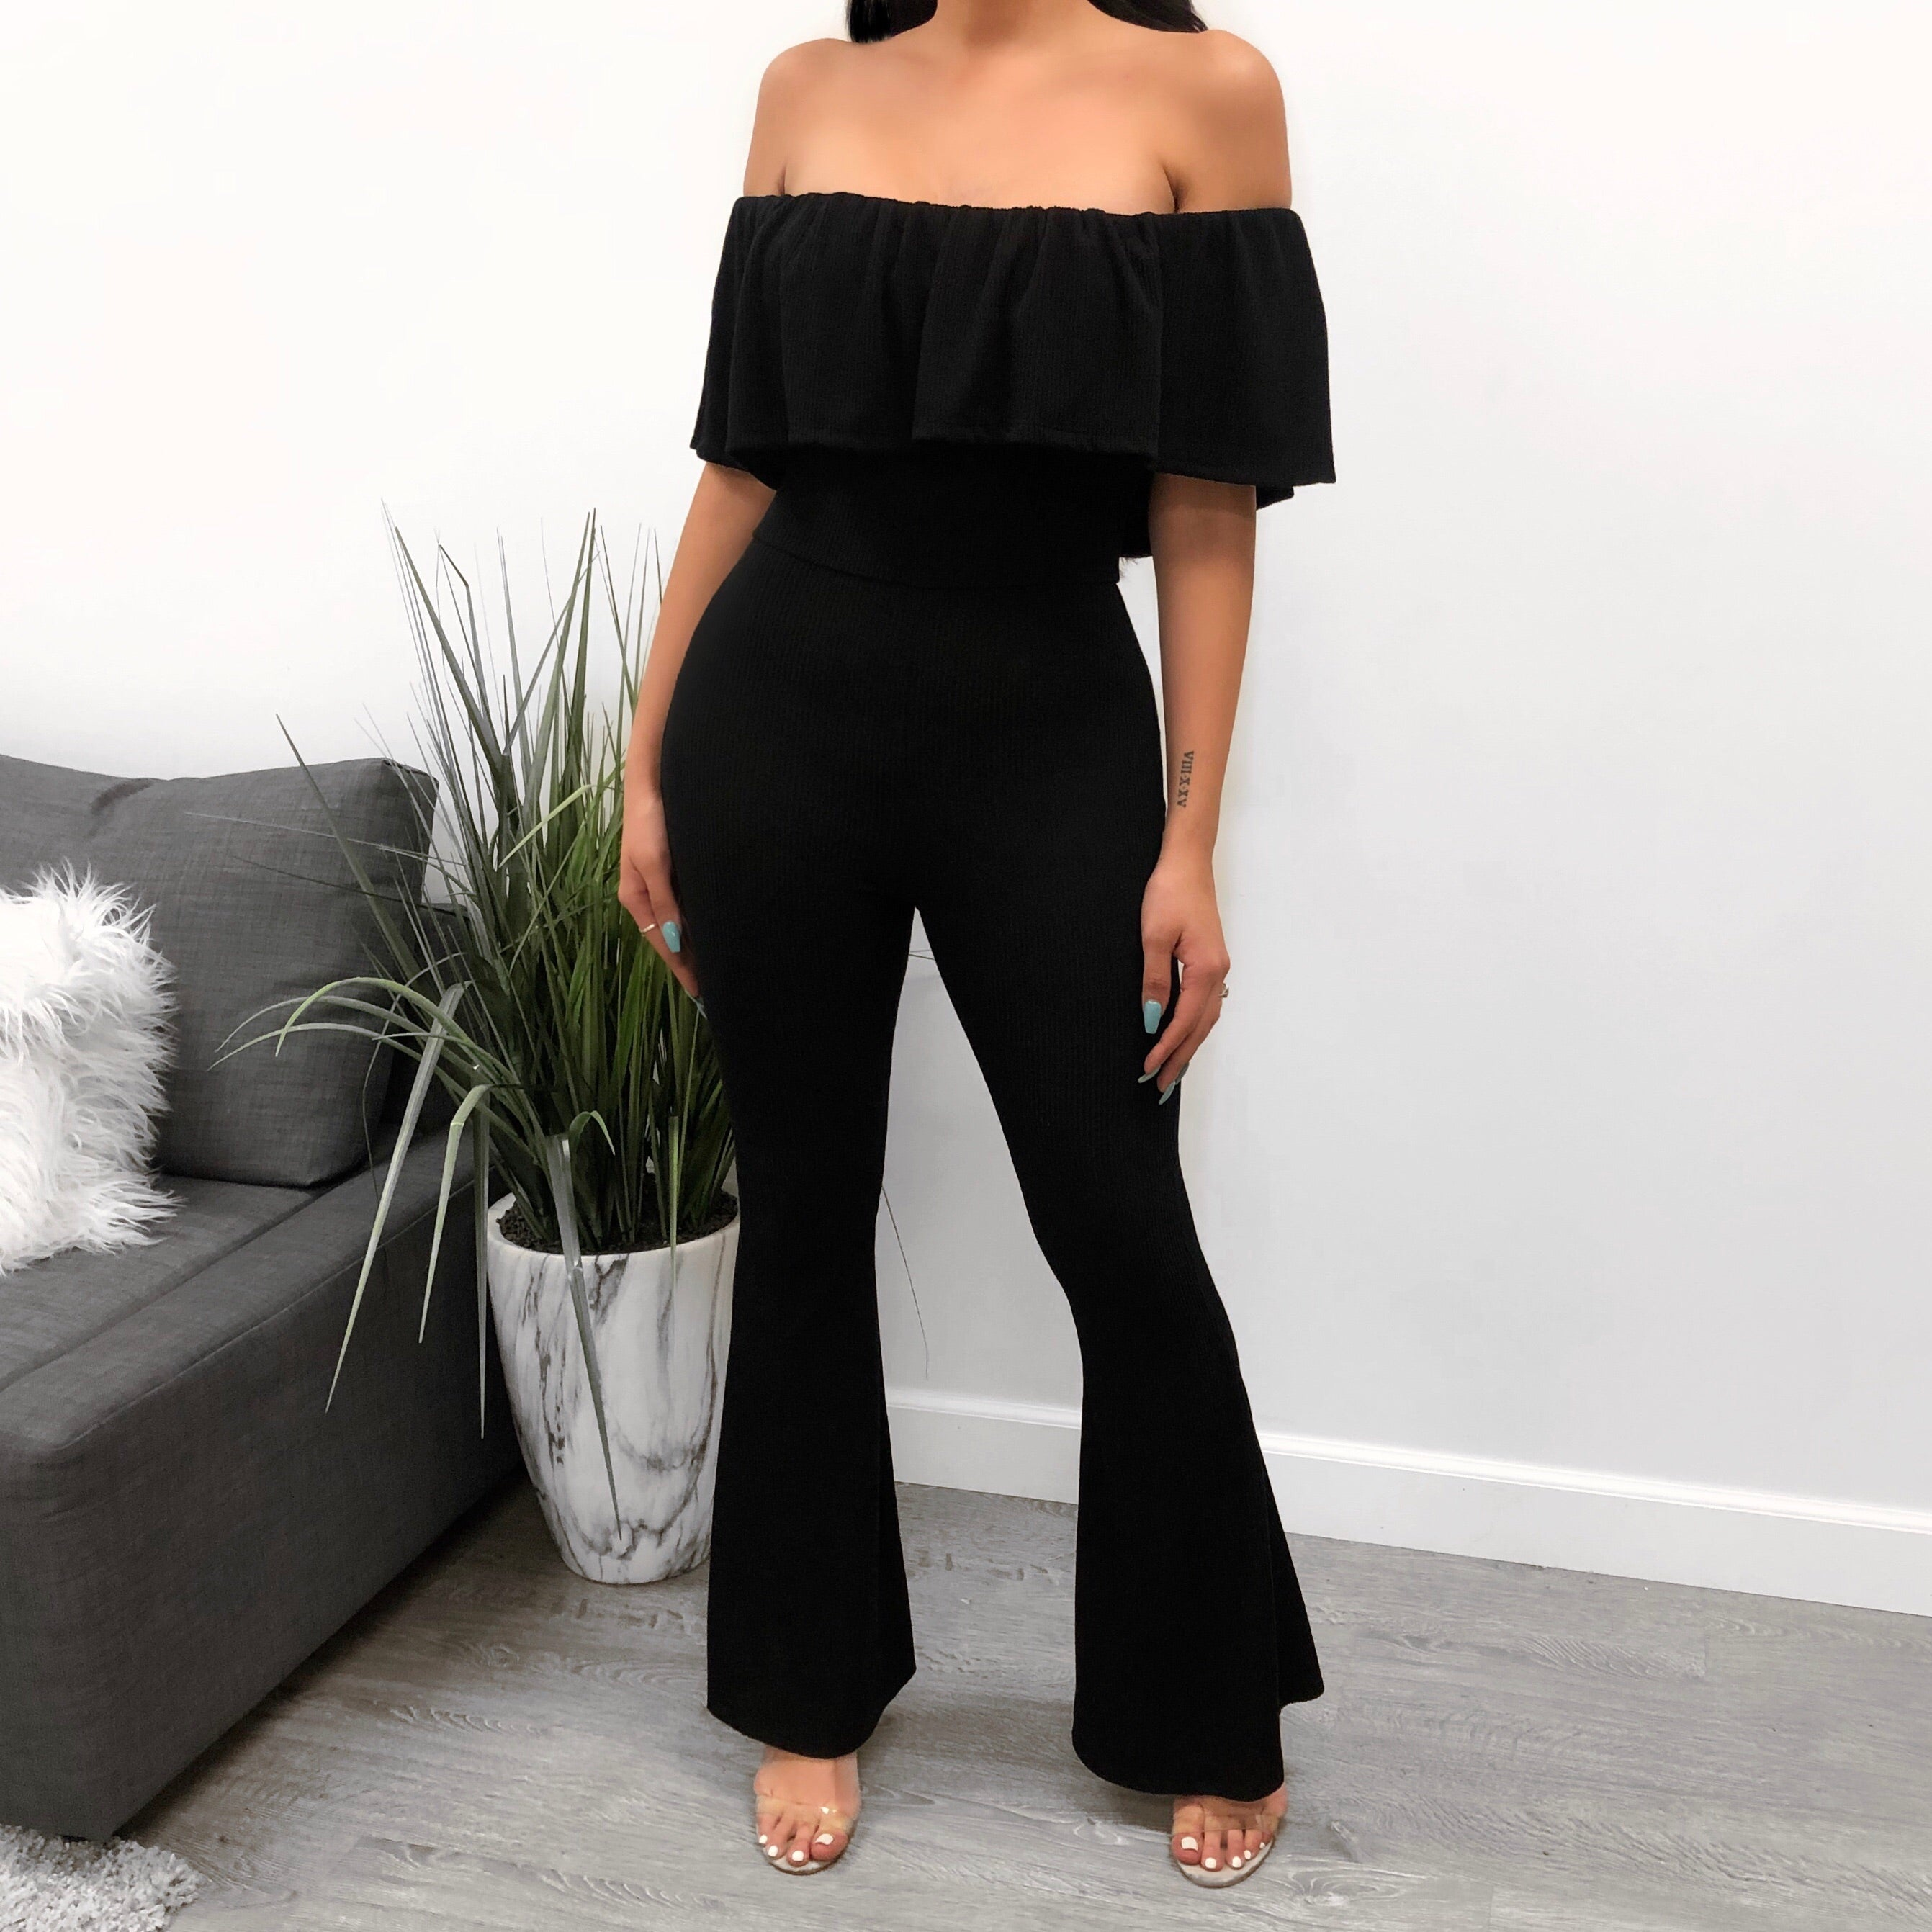 black jumpsuit with ruffled top. bottoms are bell bottoms. comes in 2 colors!